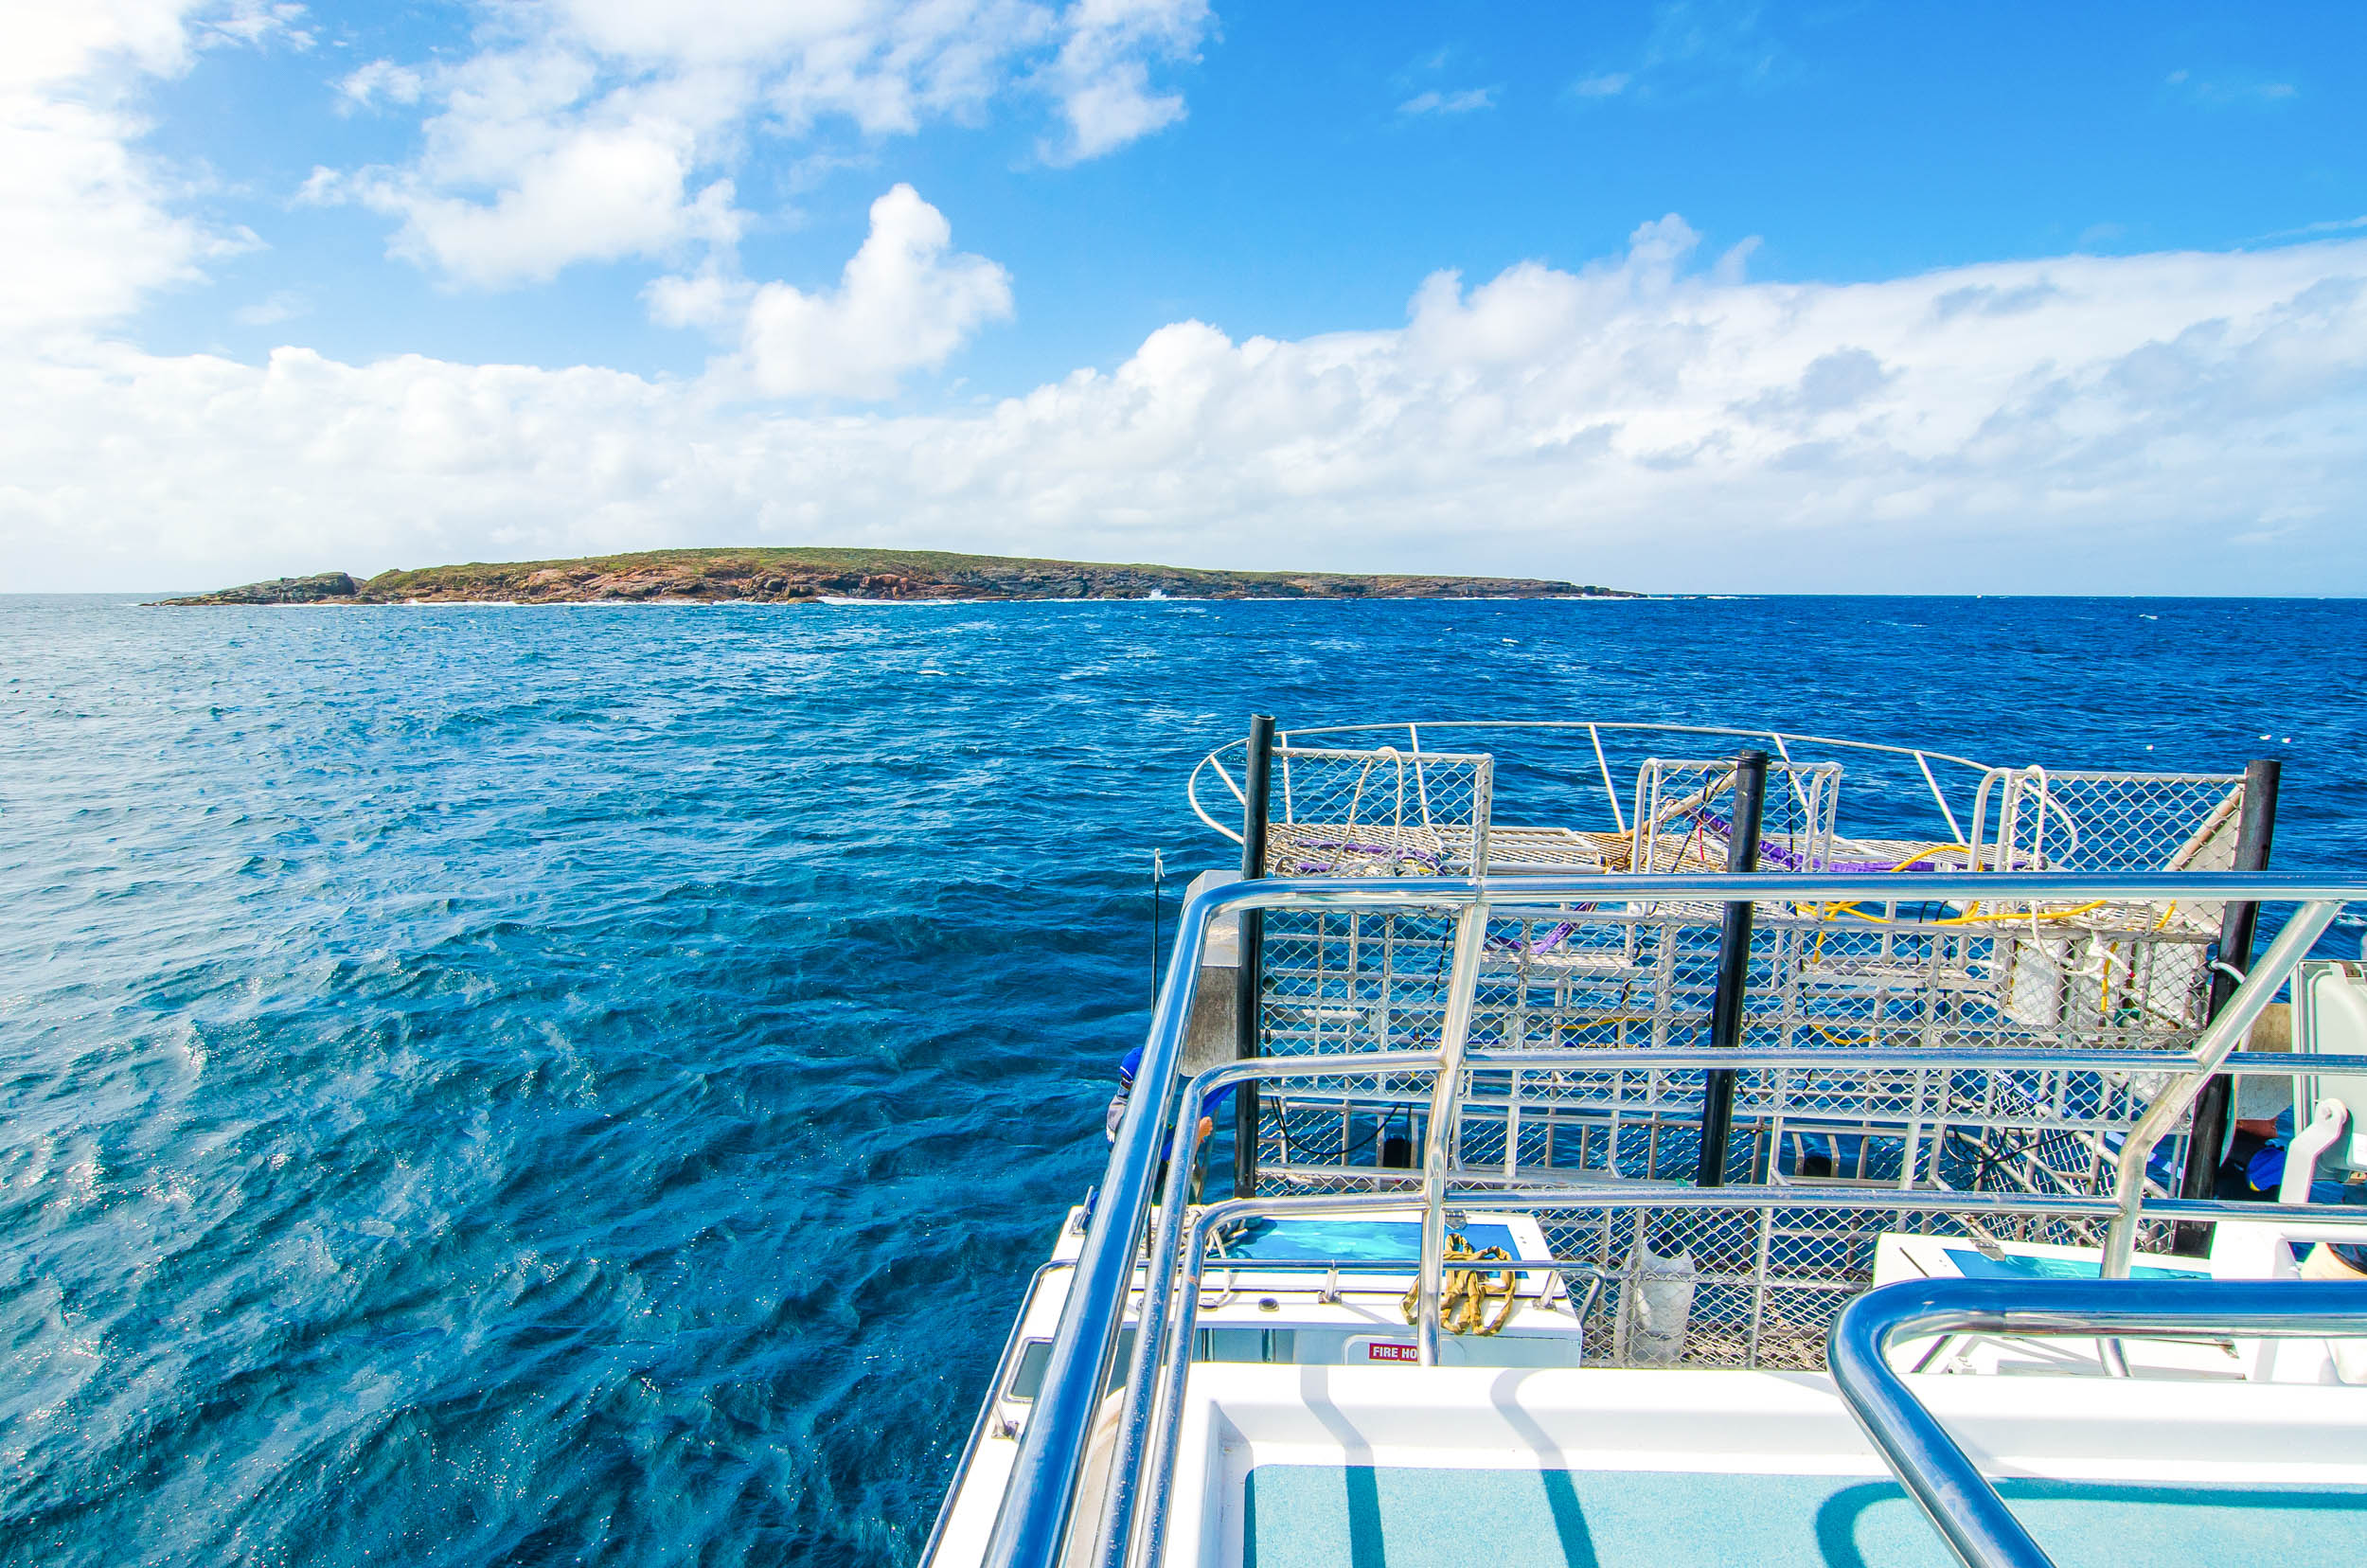 calypso star charters shark cage diving port lincoln